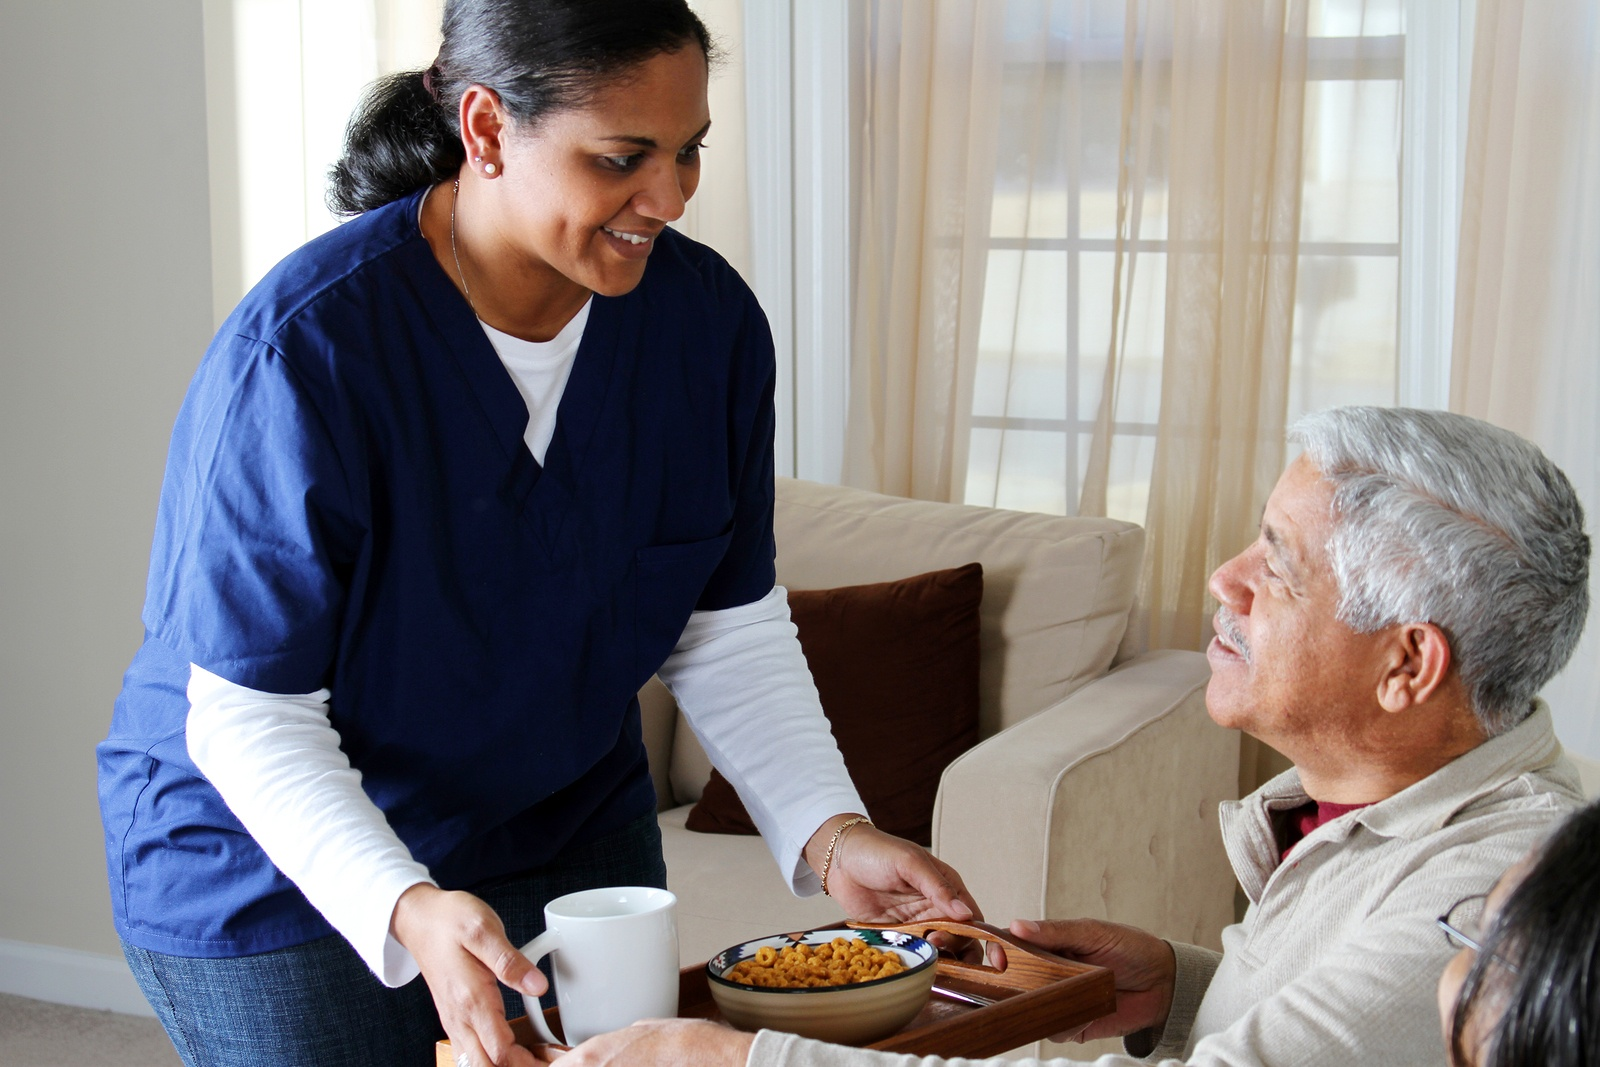 Professional Caregiver for Older Adults - Part I: Responsibilities